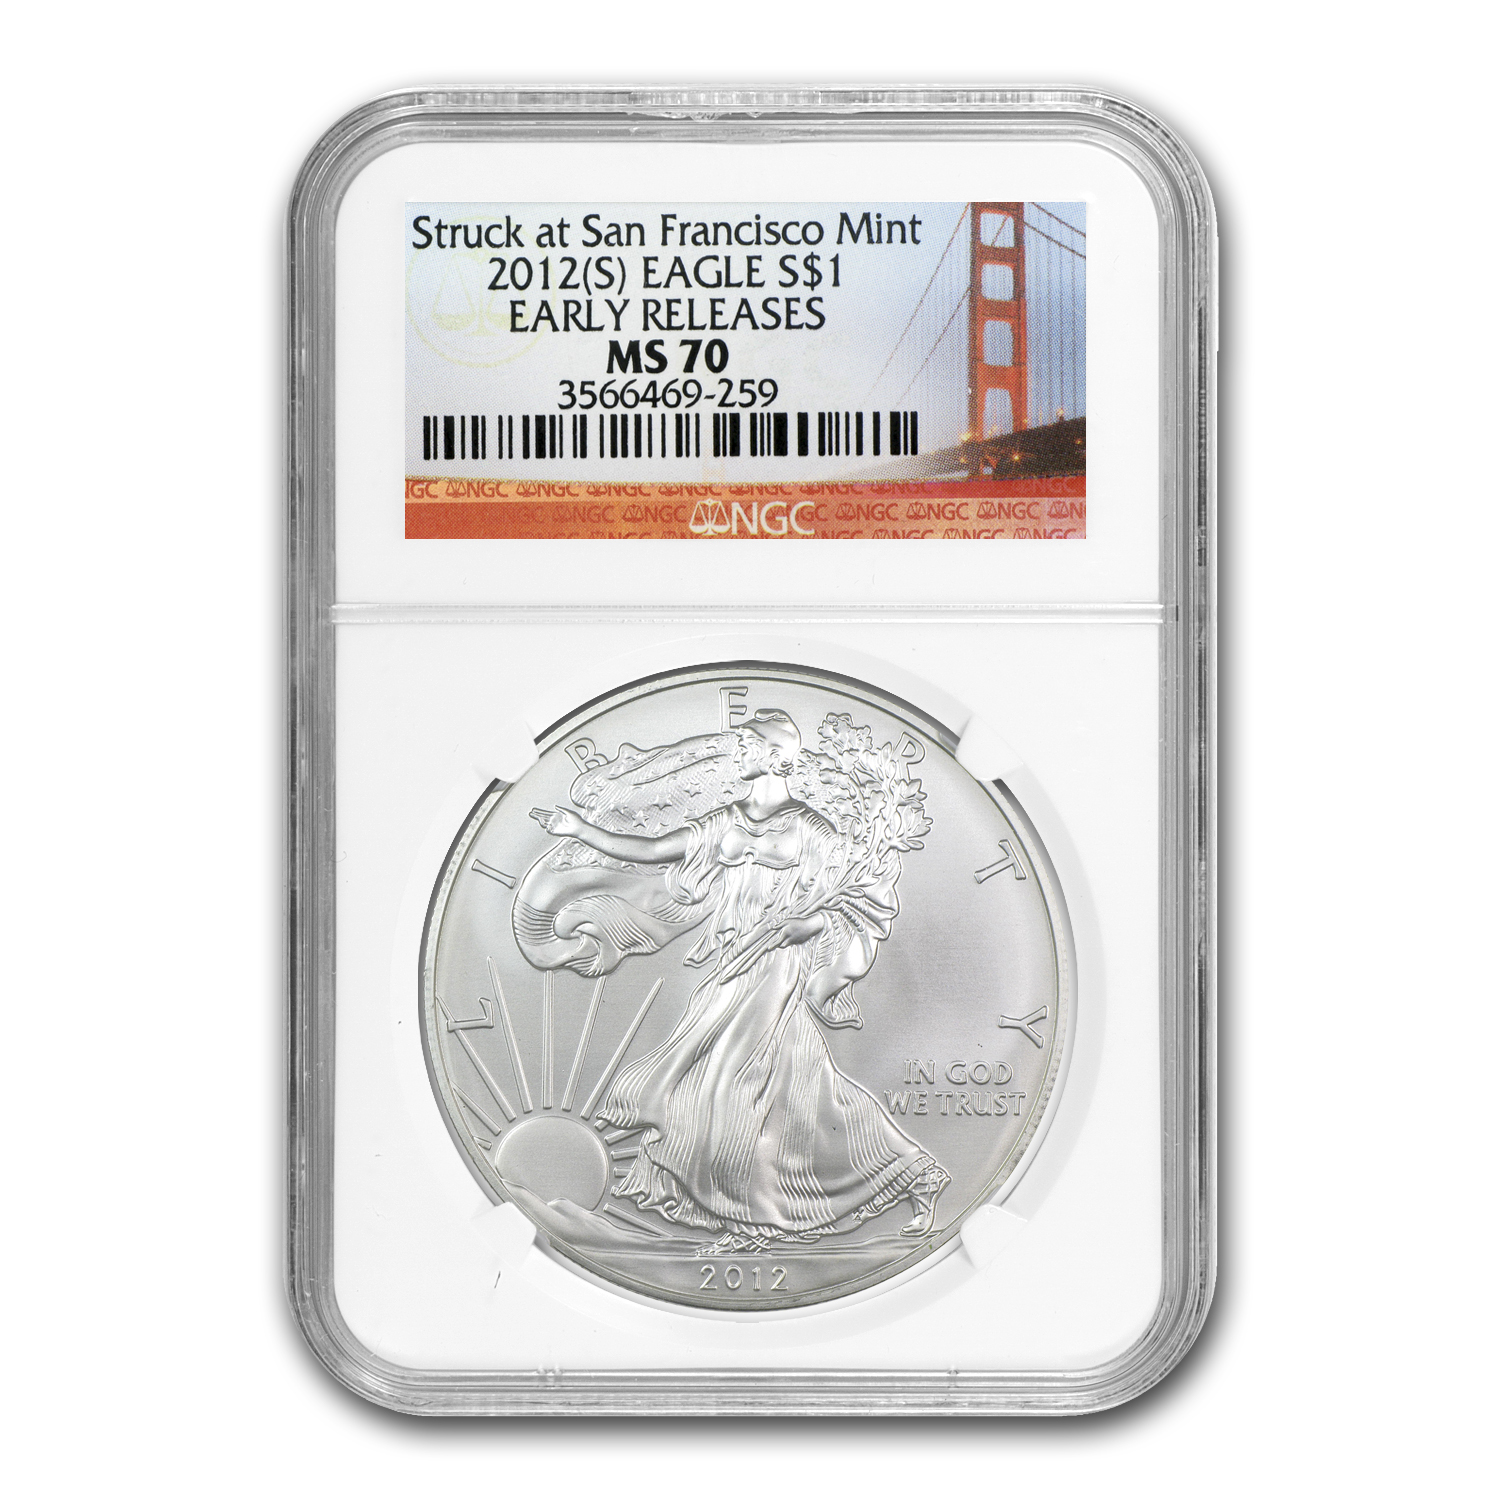 2012 (S) Silver Eagle MS-70 NGC (ER, Golden Gate Bridge)